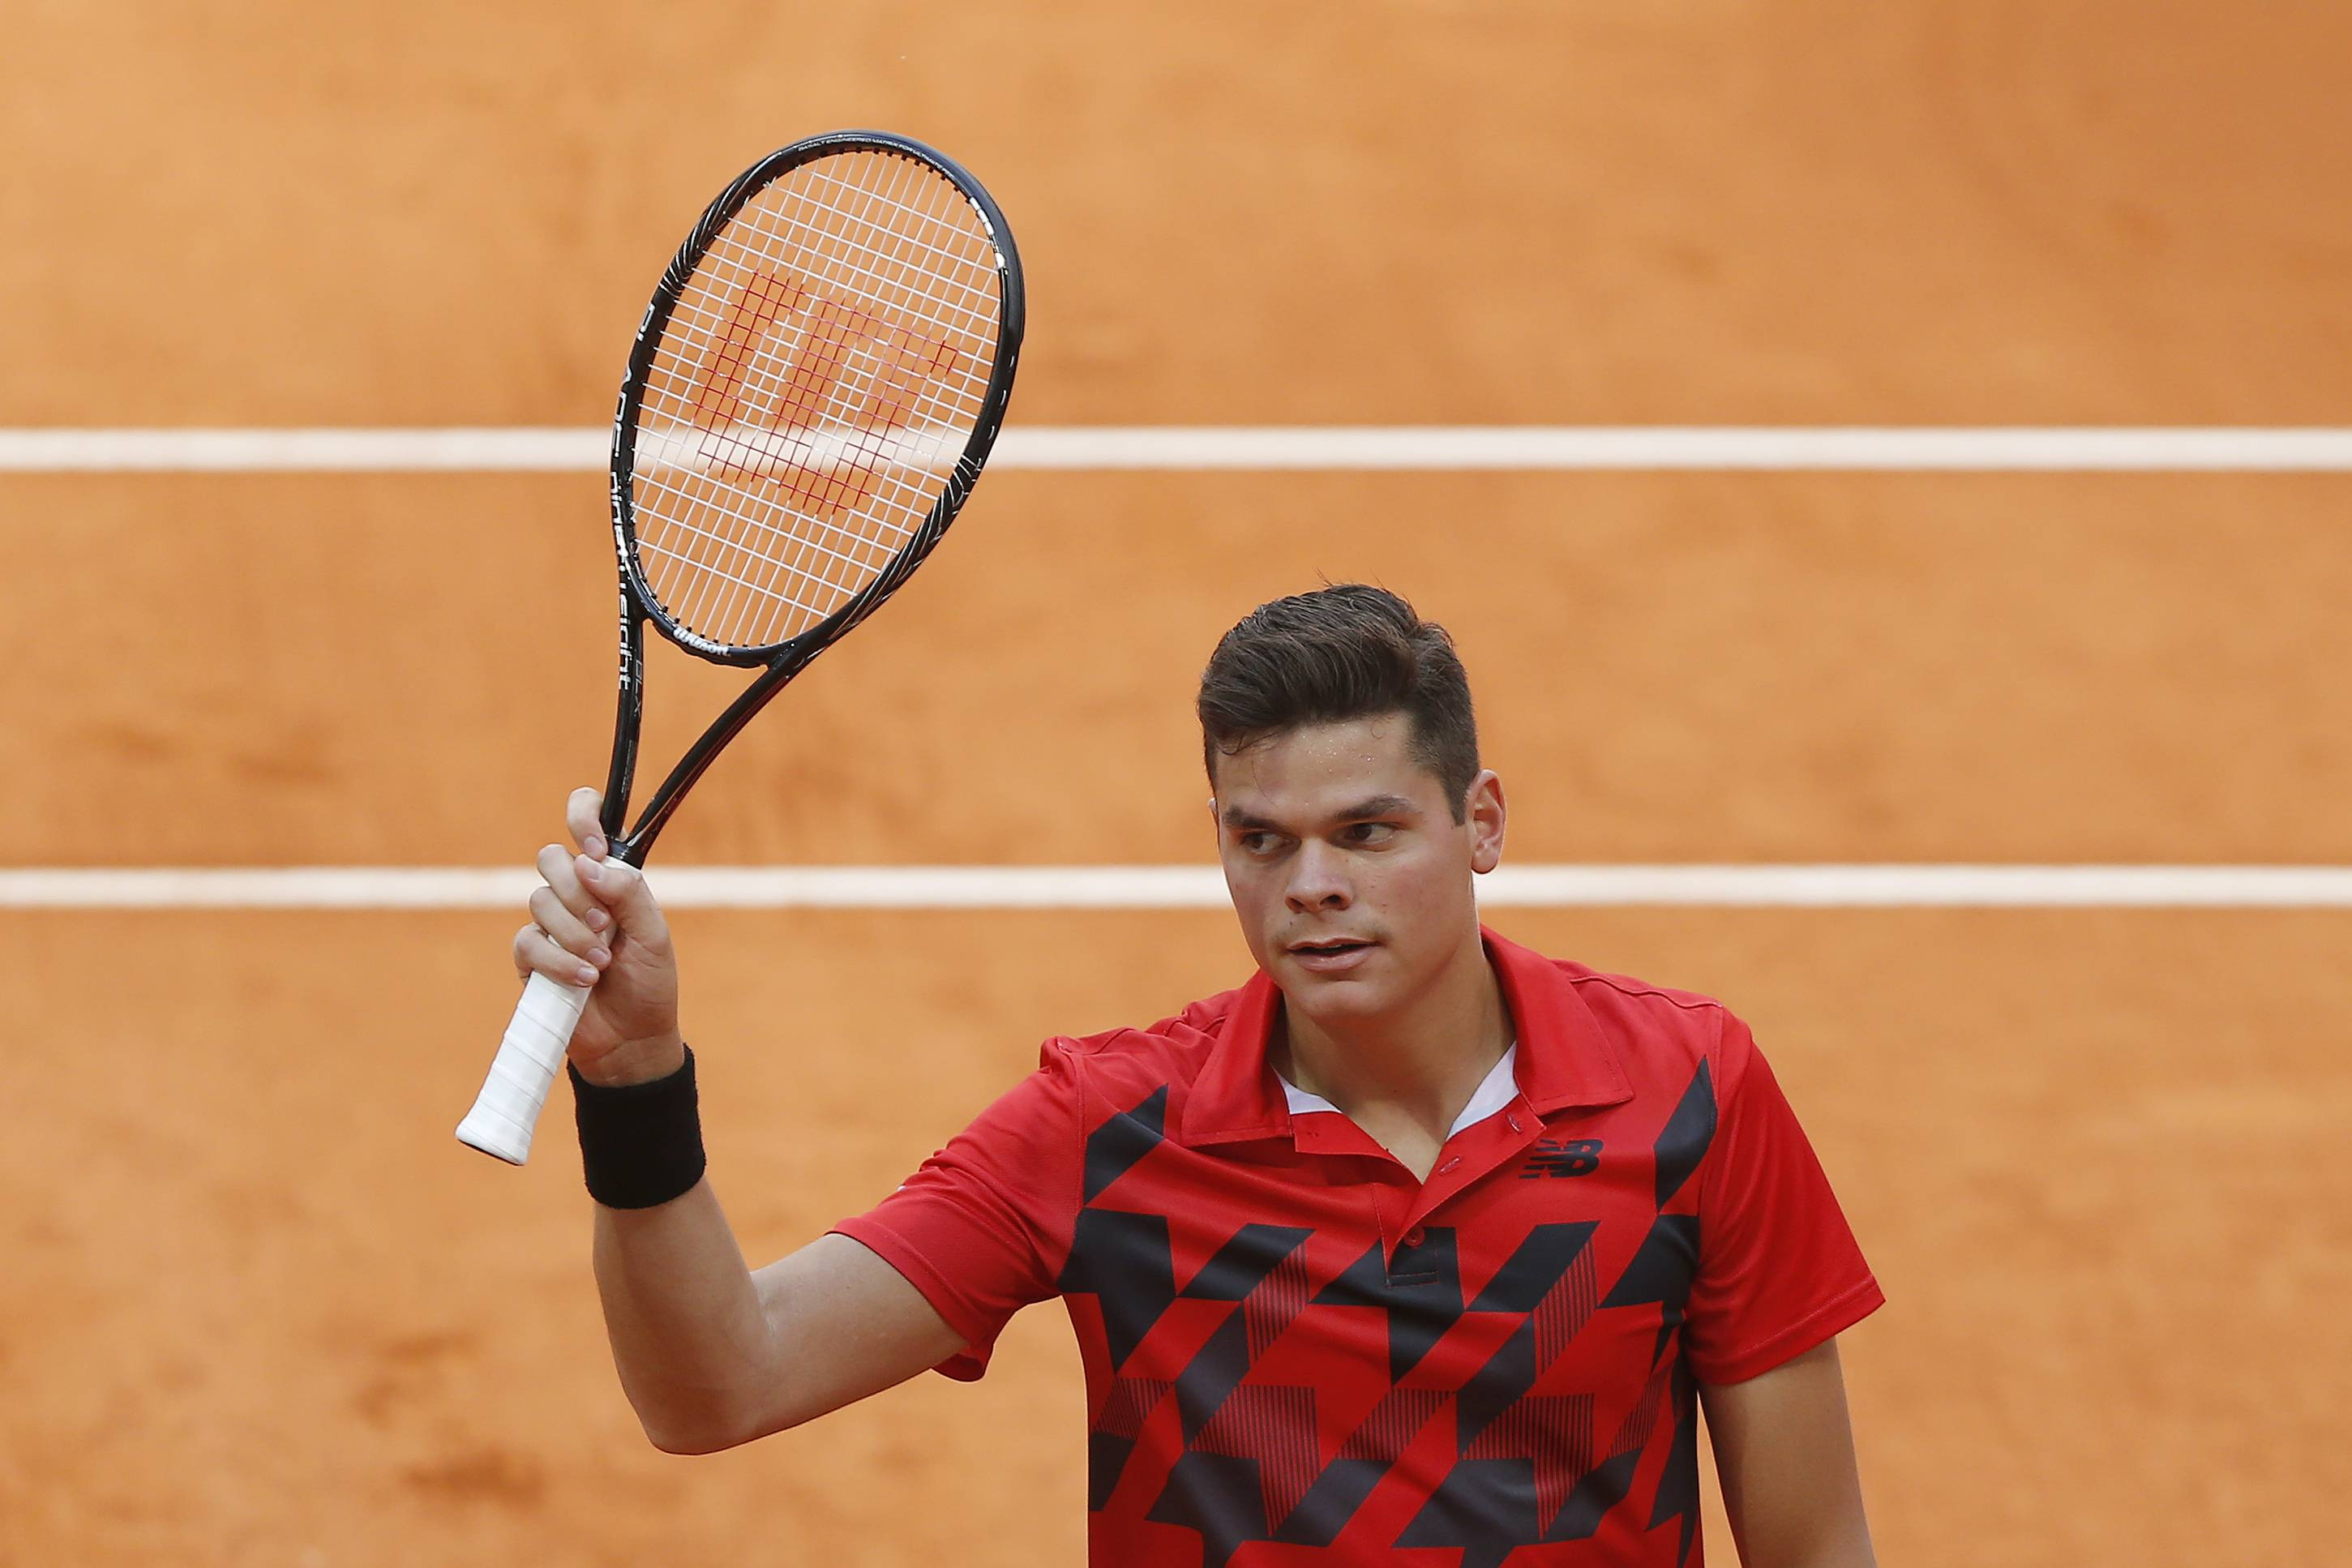 Milos Raonic from Canada celebrates his victory during a Madrid Open tennis tournament match against Jeremy Chardy from France, in Madrid, Spain, Tuesday, May 6, 2014.